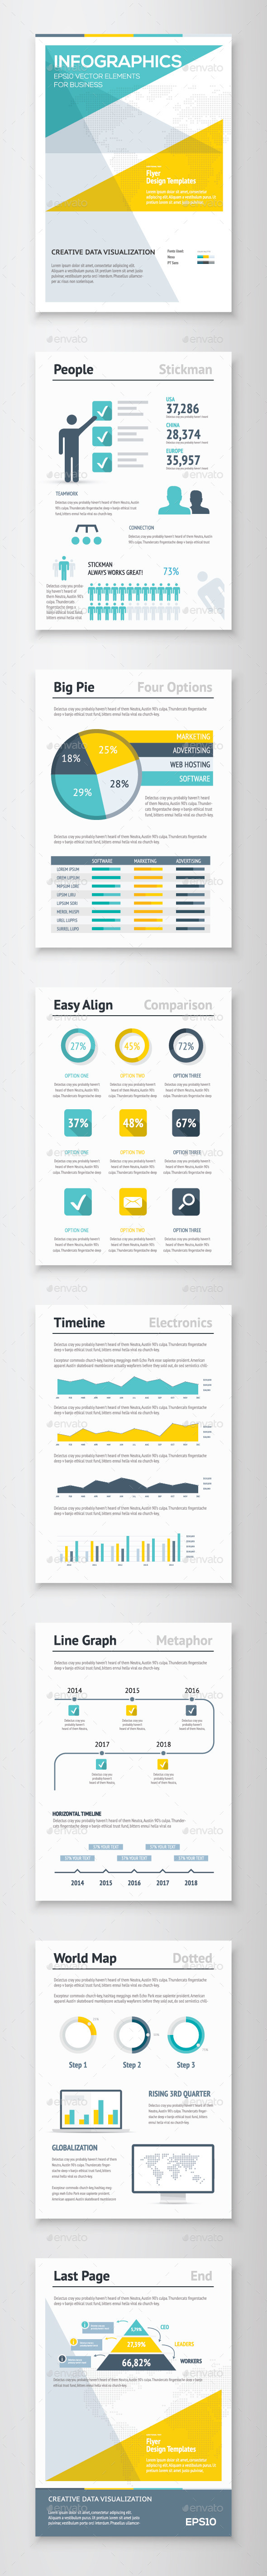 Infographic Brochure Vector Elements Kit 4 - Infographics